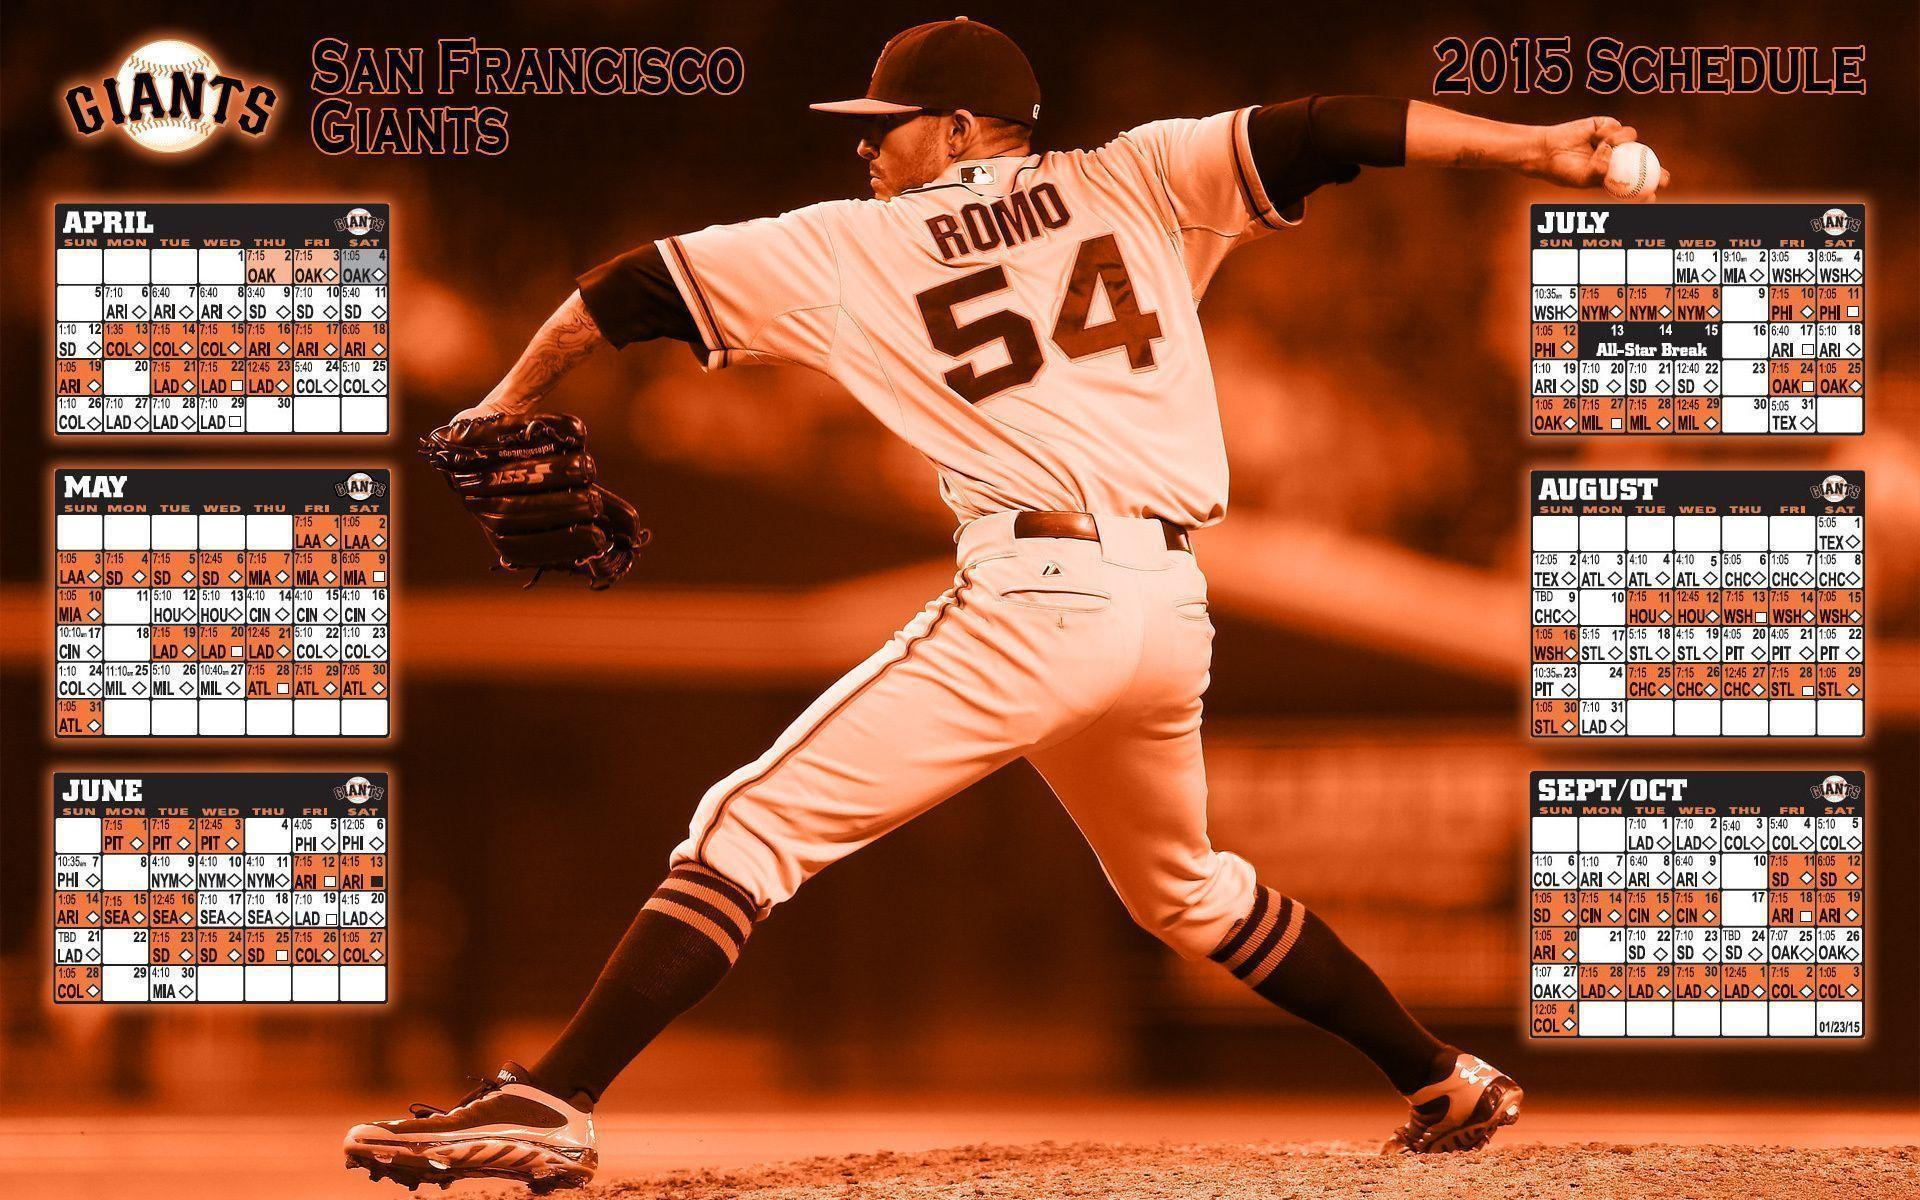 sf giants 2017 schedule wallpapers - wallpaper cave